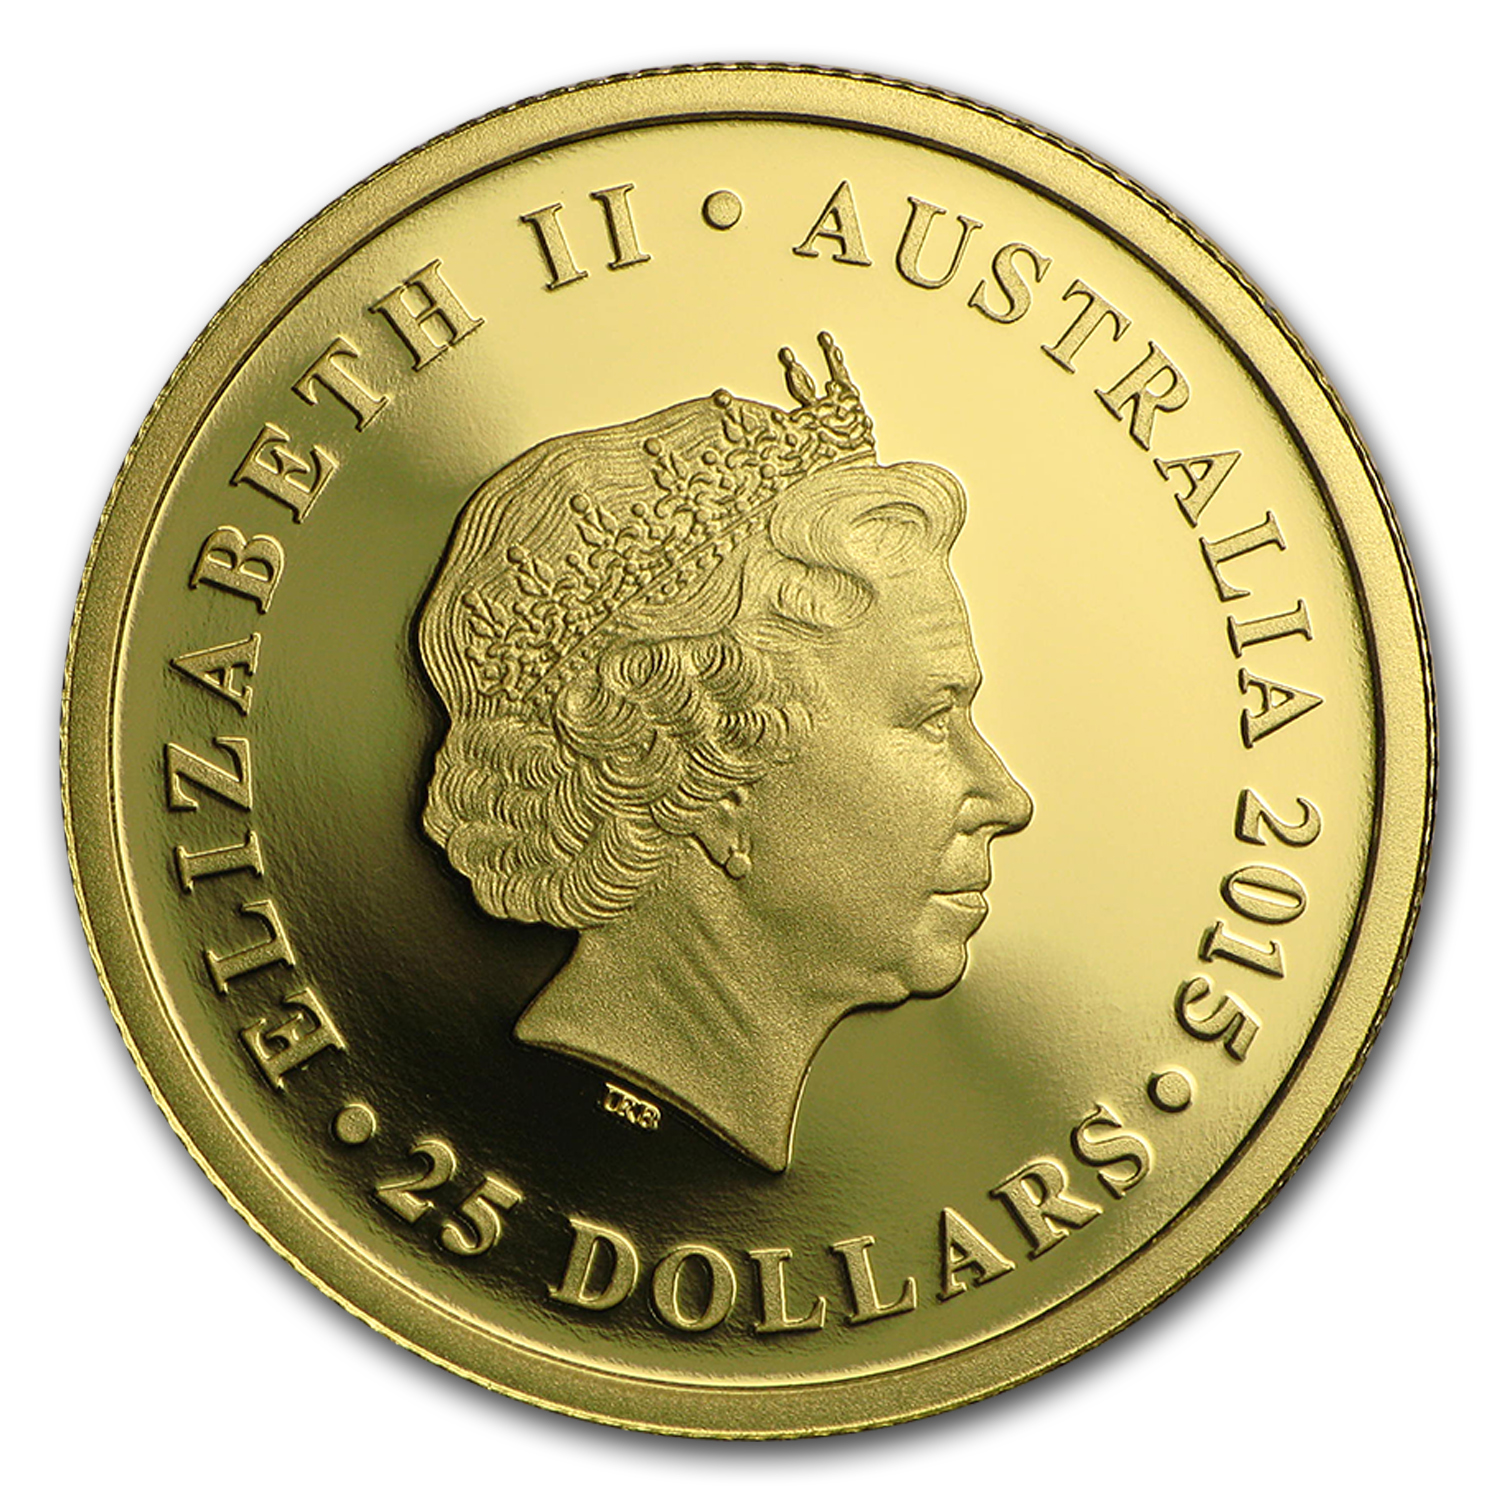 2015 Australia Gold Sovereign Proof